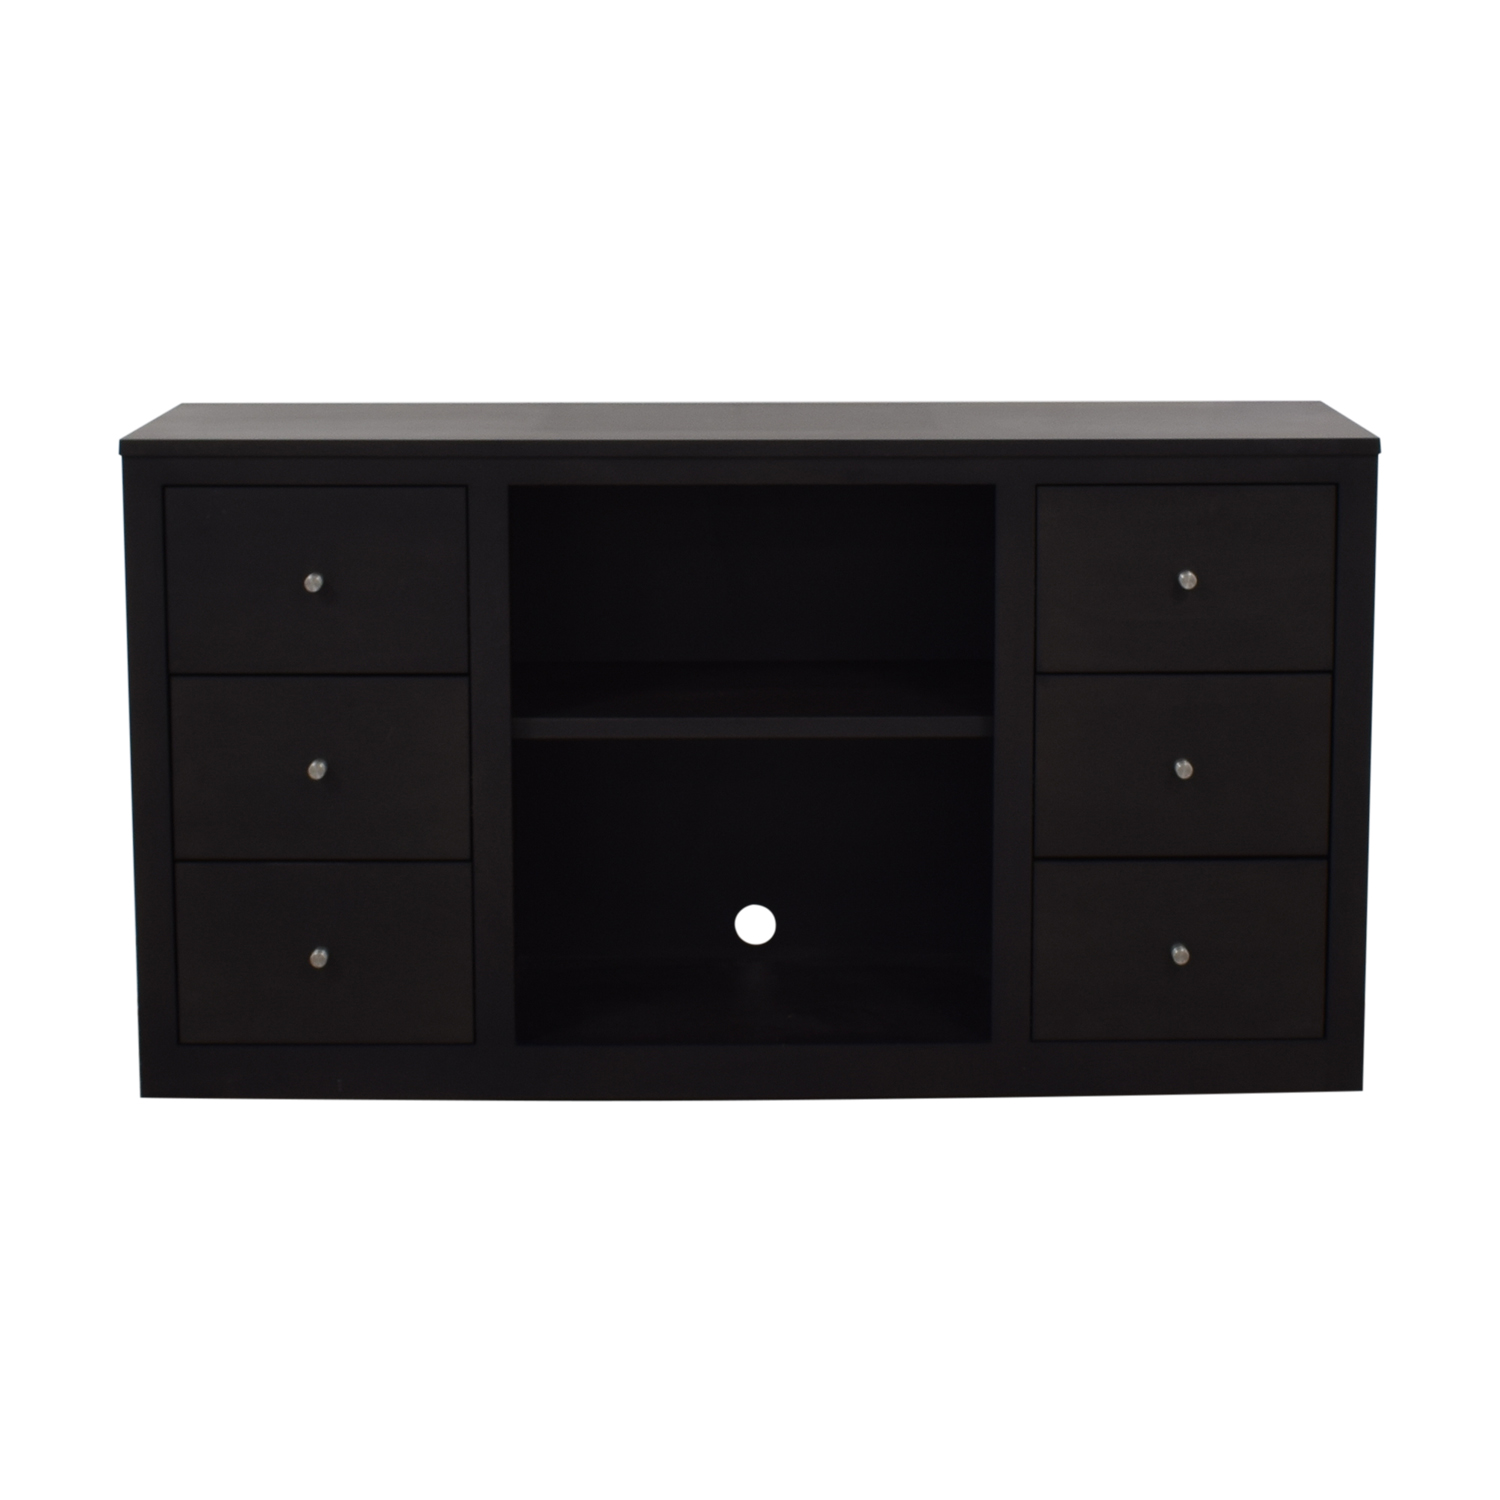 buy Room & Board Room & Board Woodwind Maple With Charcoal Stain Media Cabinet online